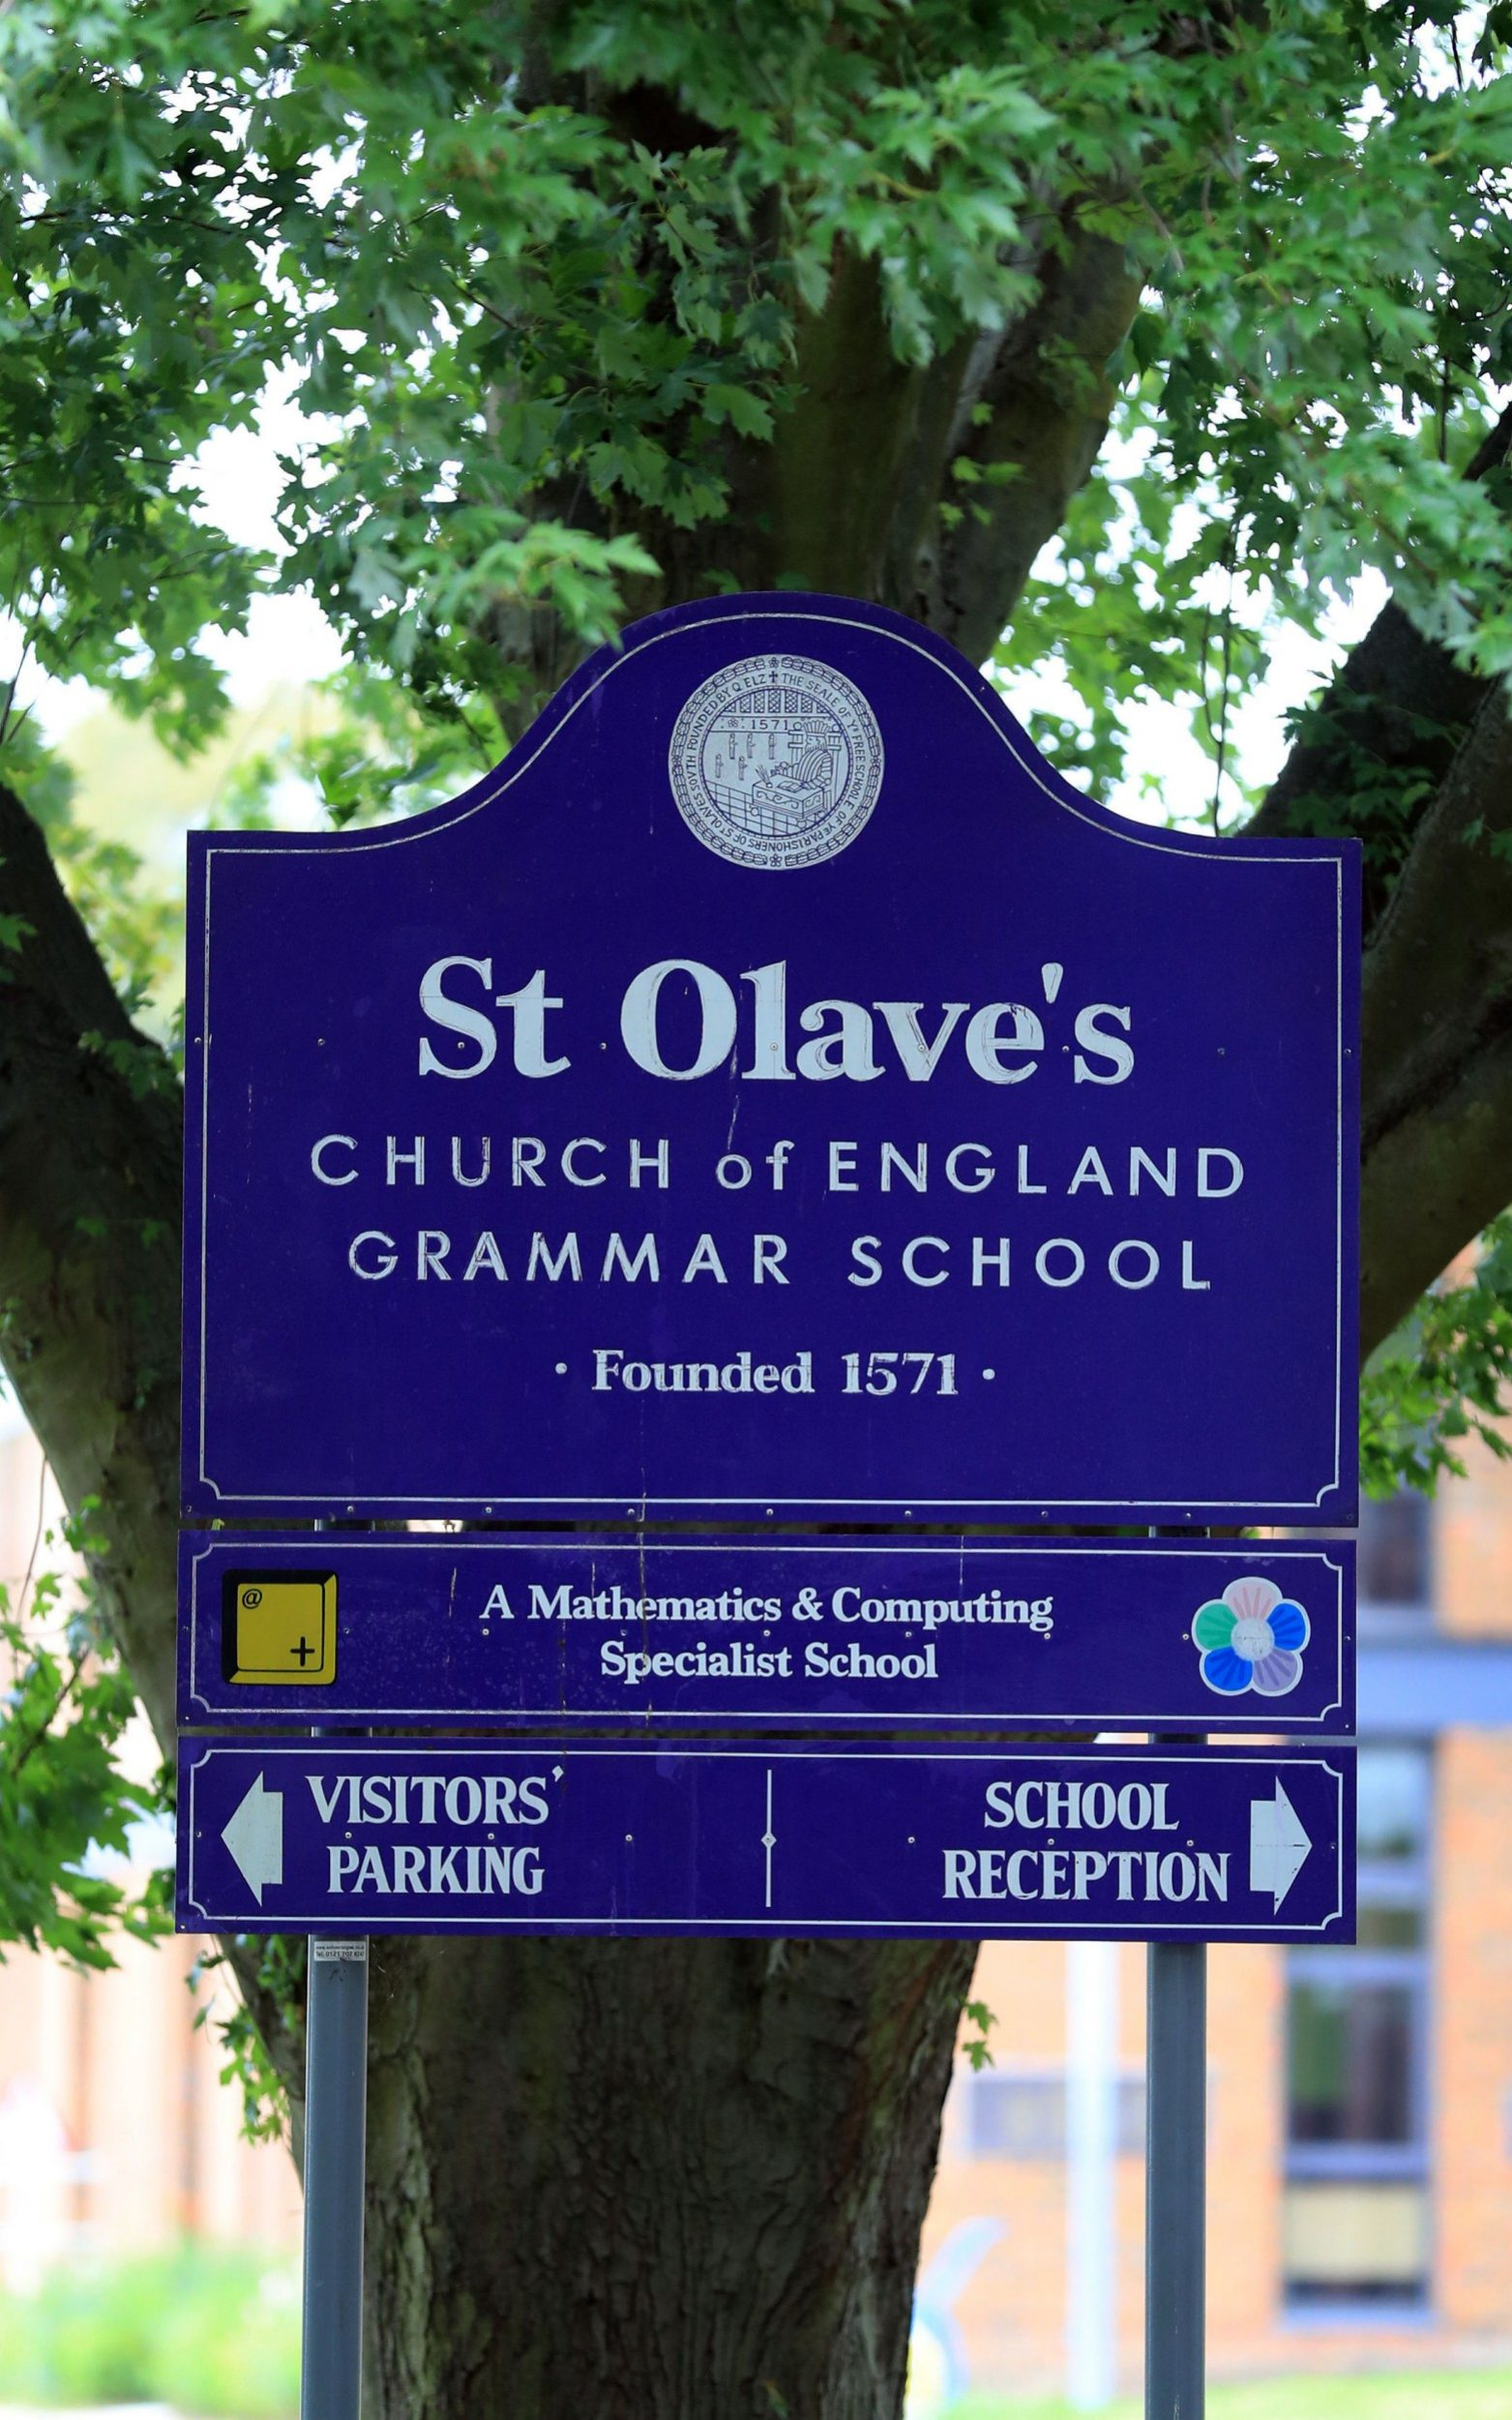 Legal action was being pursued against the governing body of St Olave's